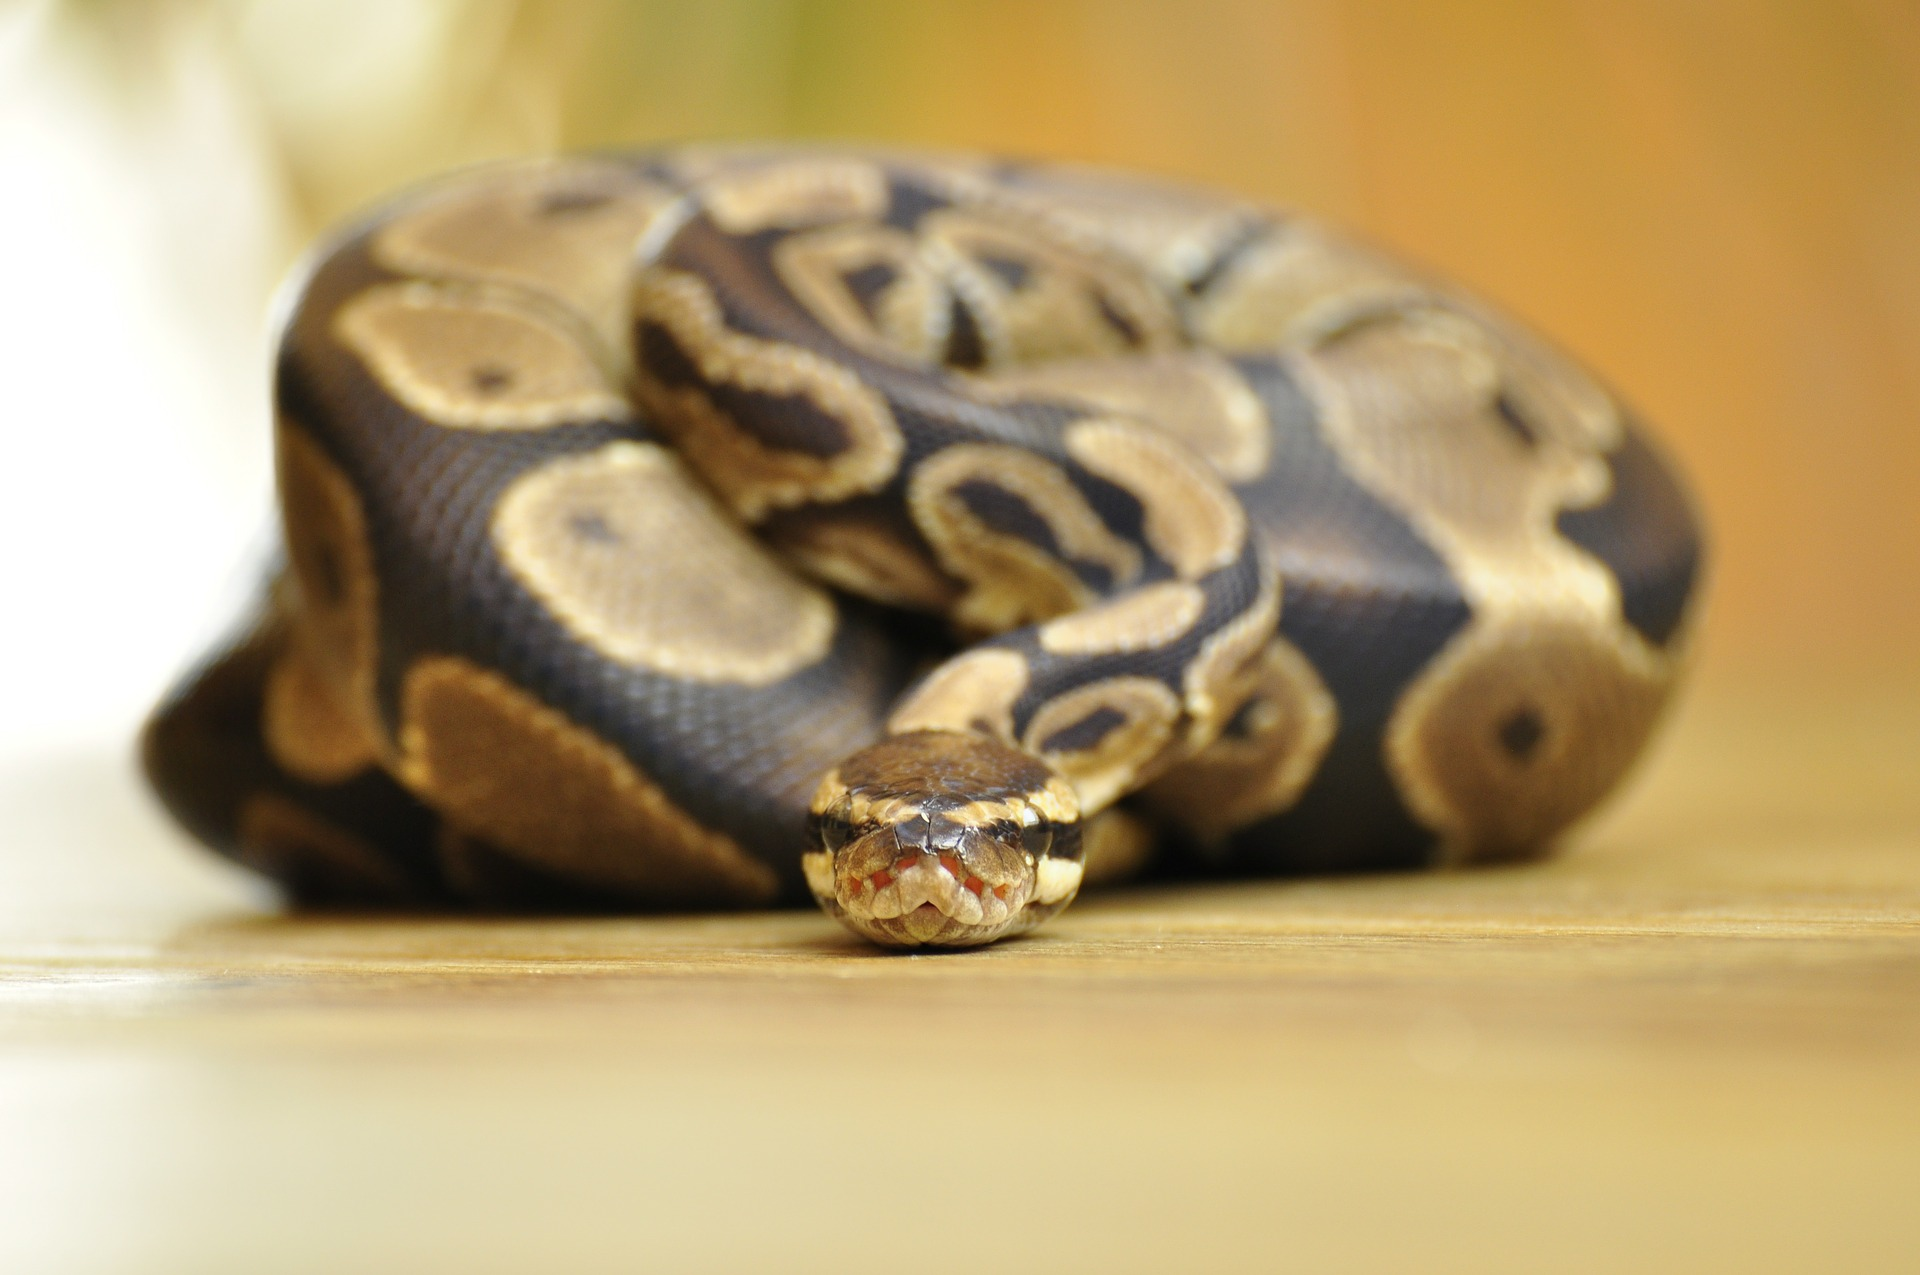 Photo of ball python in coil